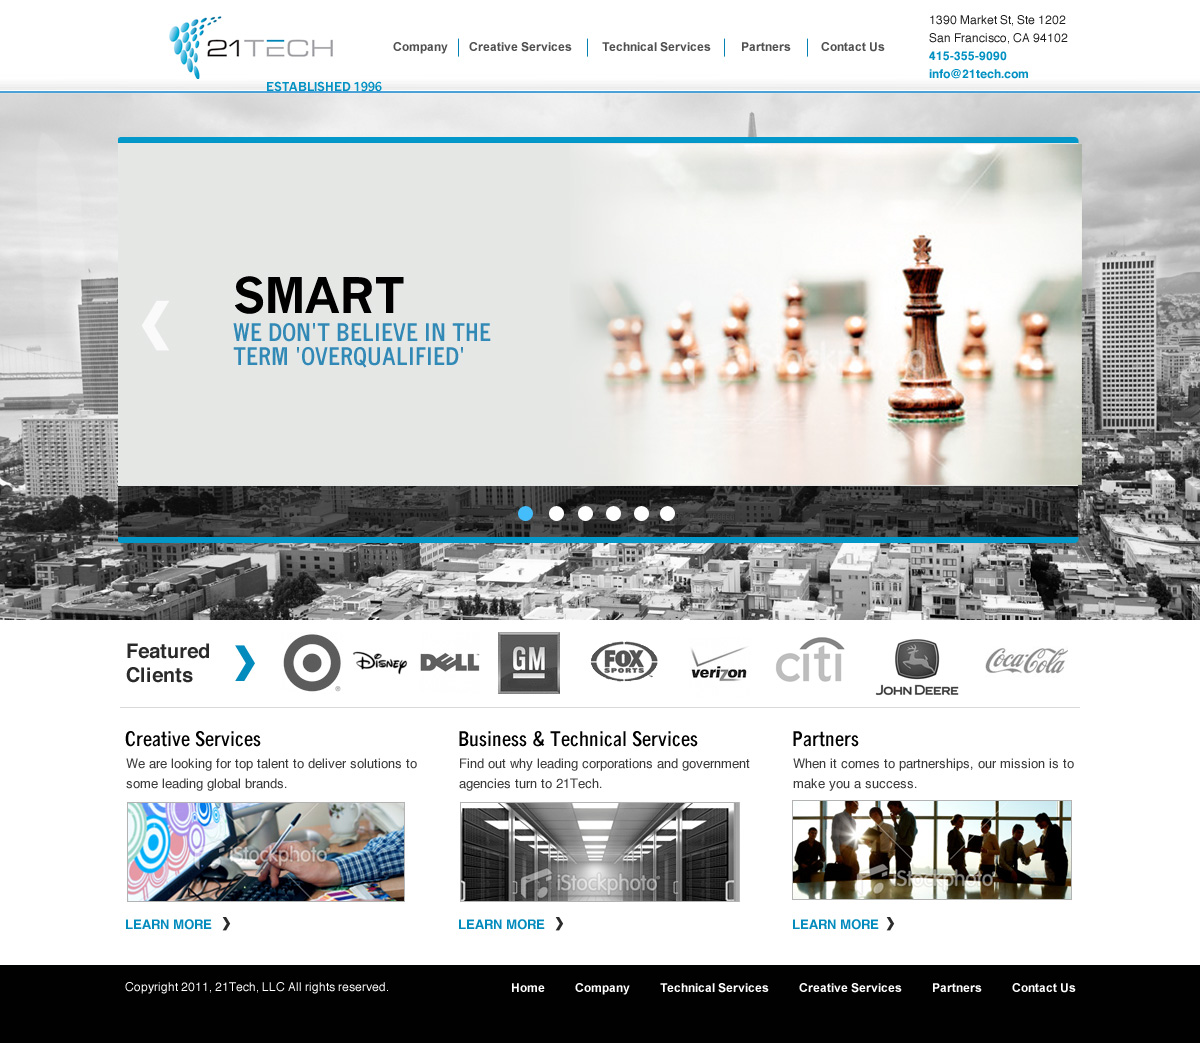 Web Design By Fielding Ideas For San Francisco Leading Consulting Firm    21Tech Web Design Project